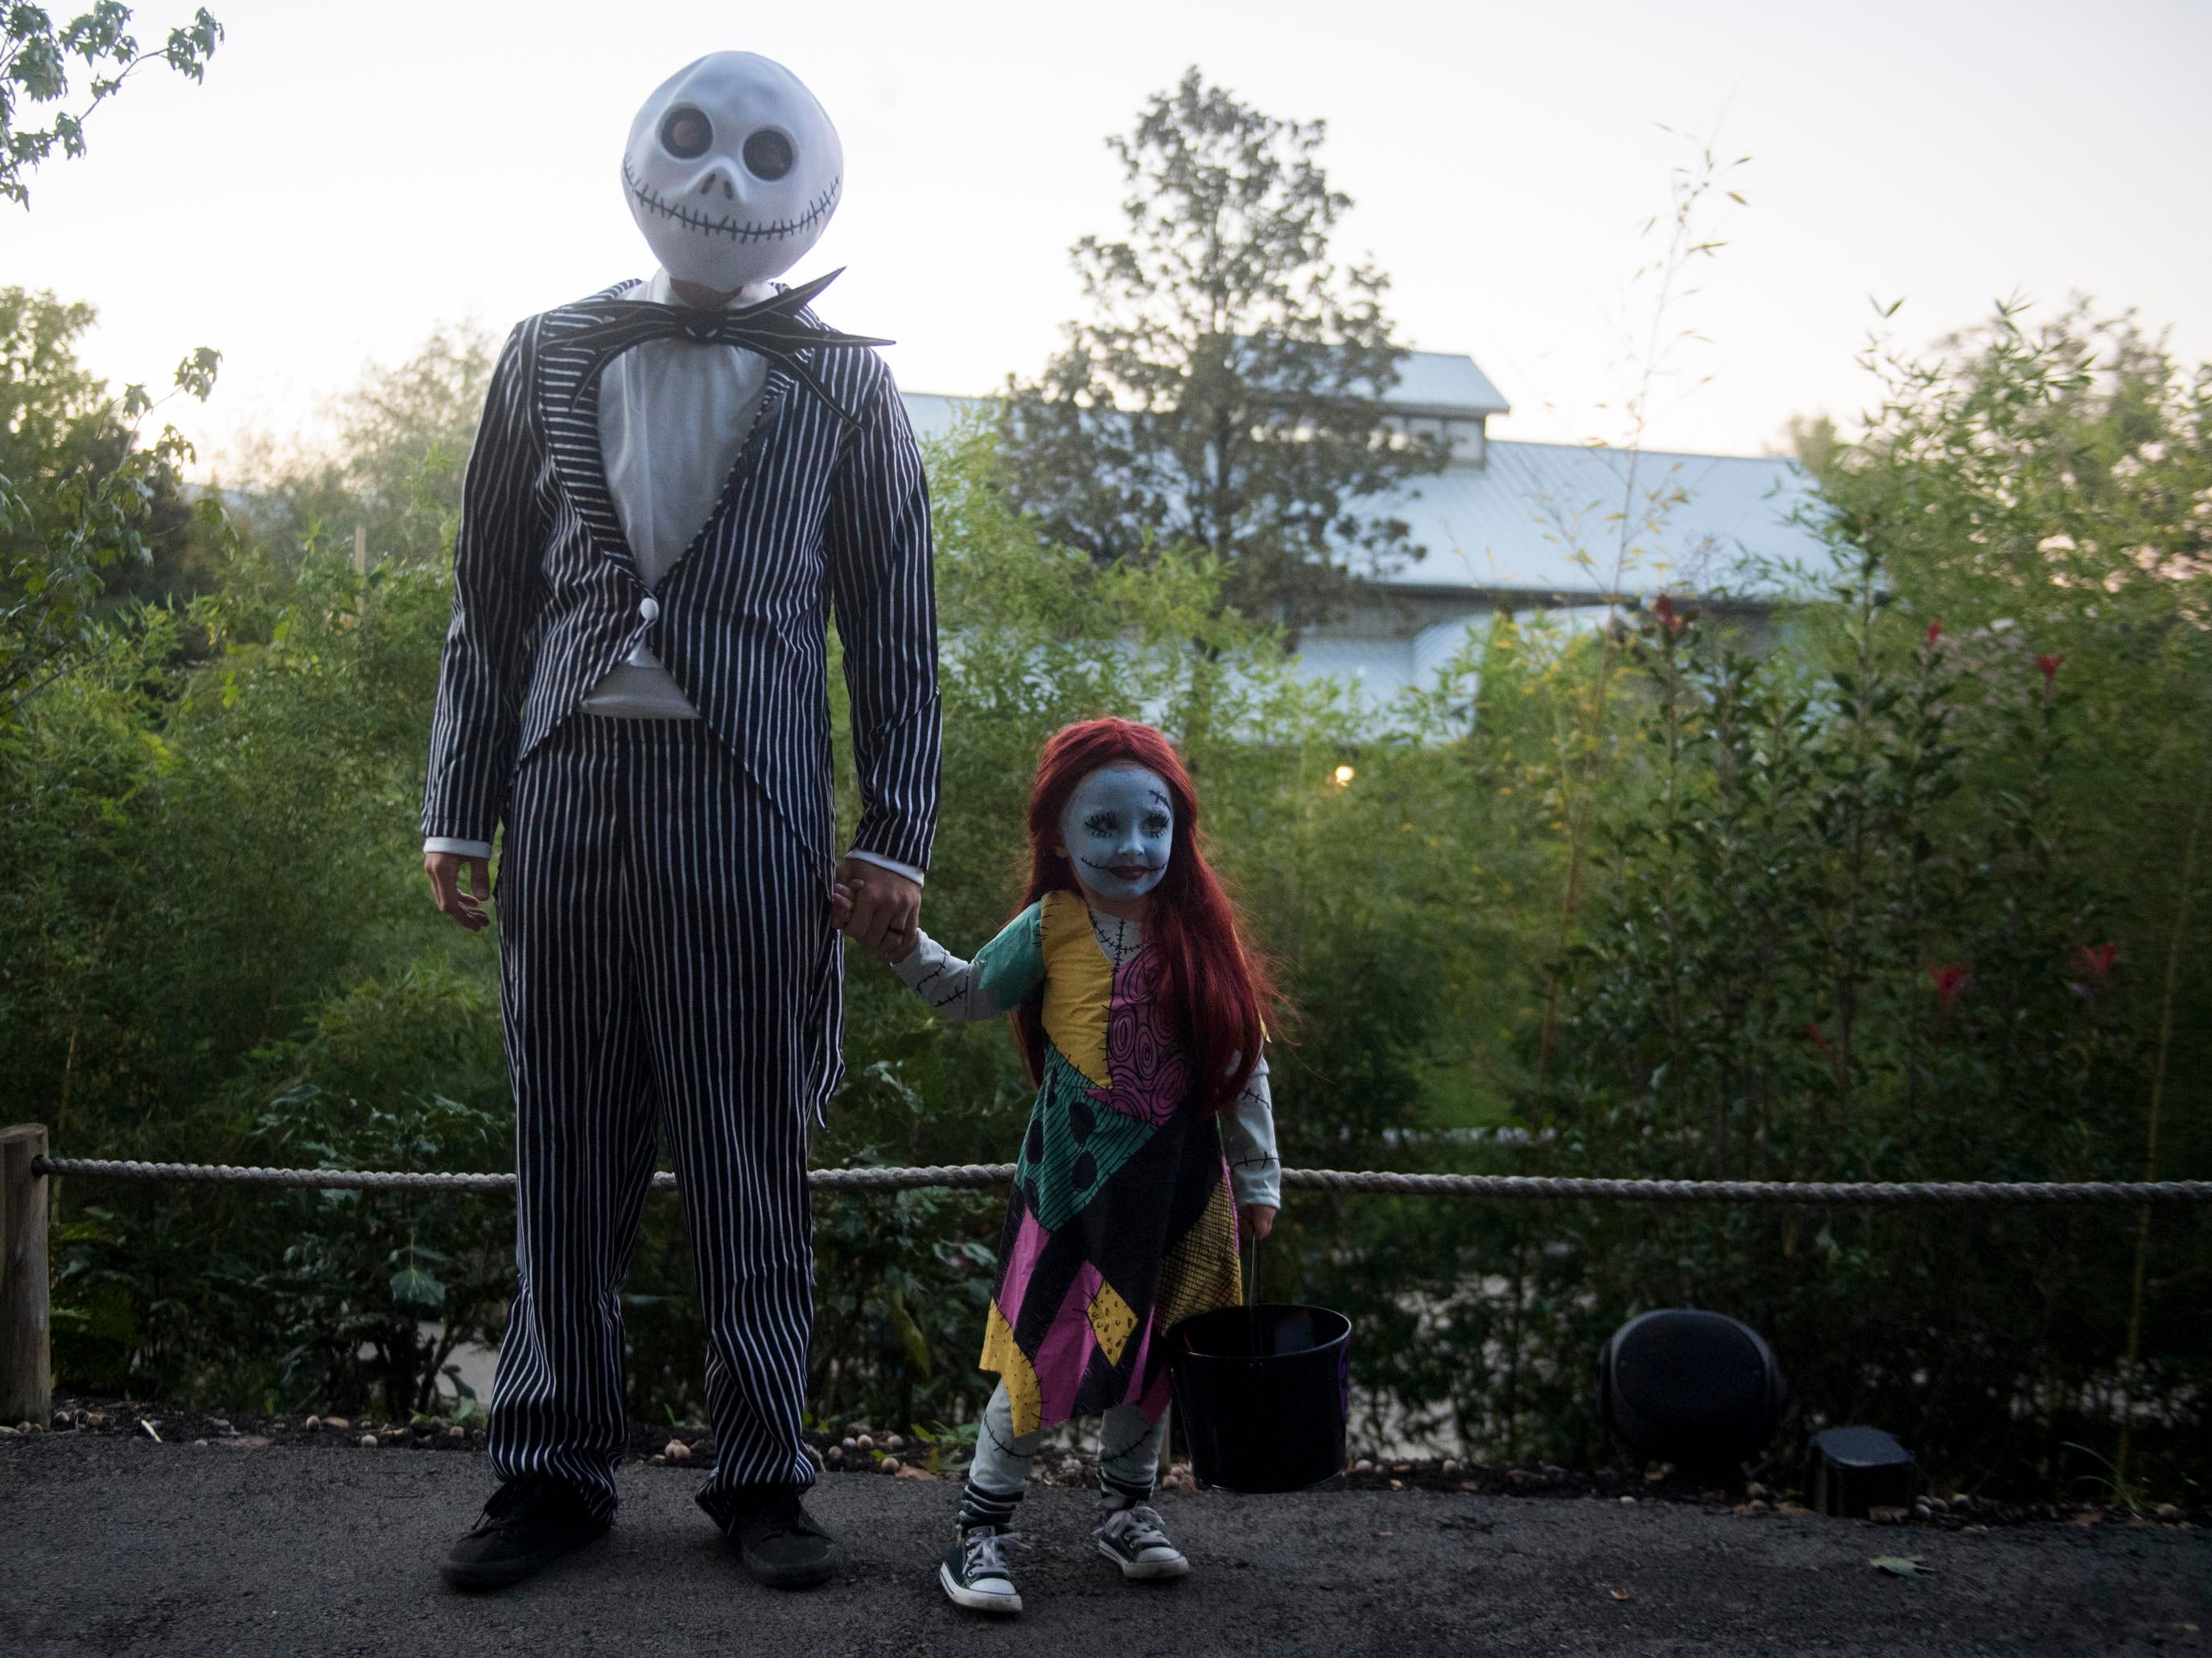 Brandon and Harper Lay are Jack Skellington and Sally of The Nightmare before Christmas during Zoo Knoxville's Boo! at the Zoo on Saturday, October 20, 2018.